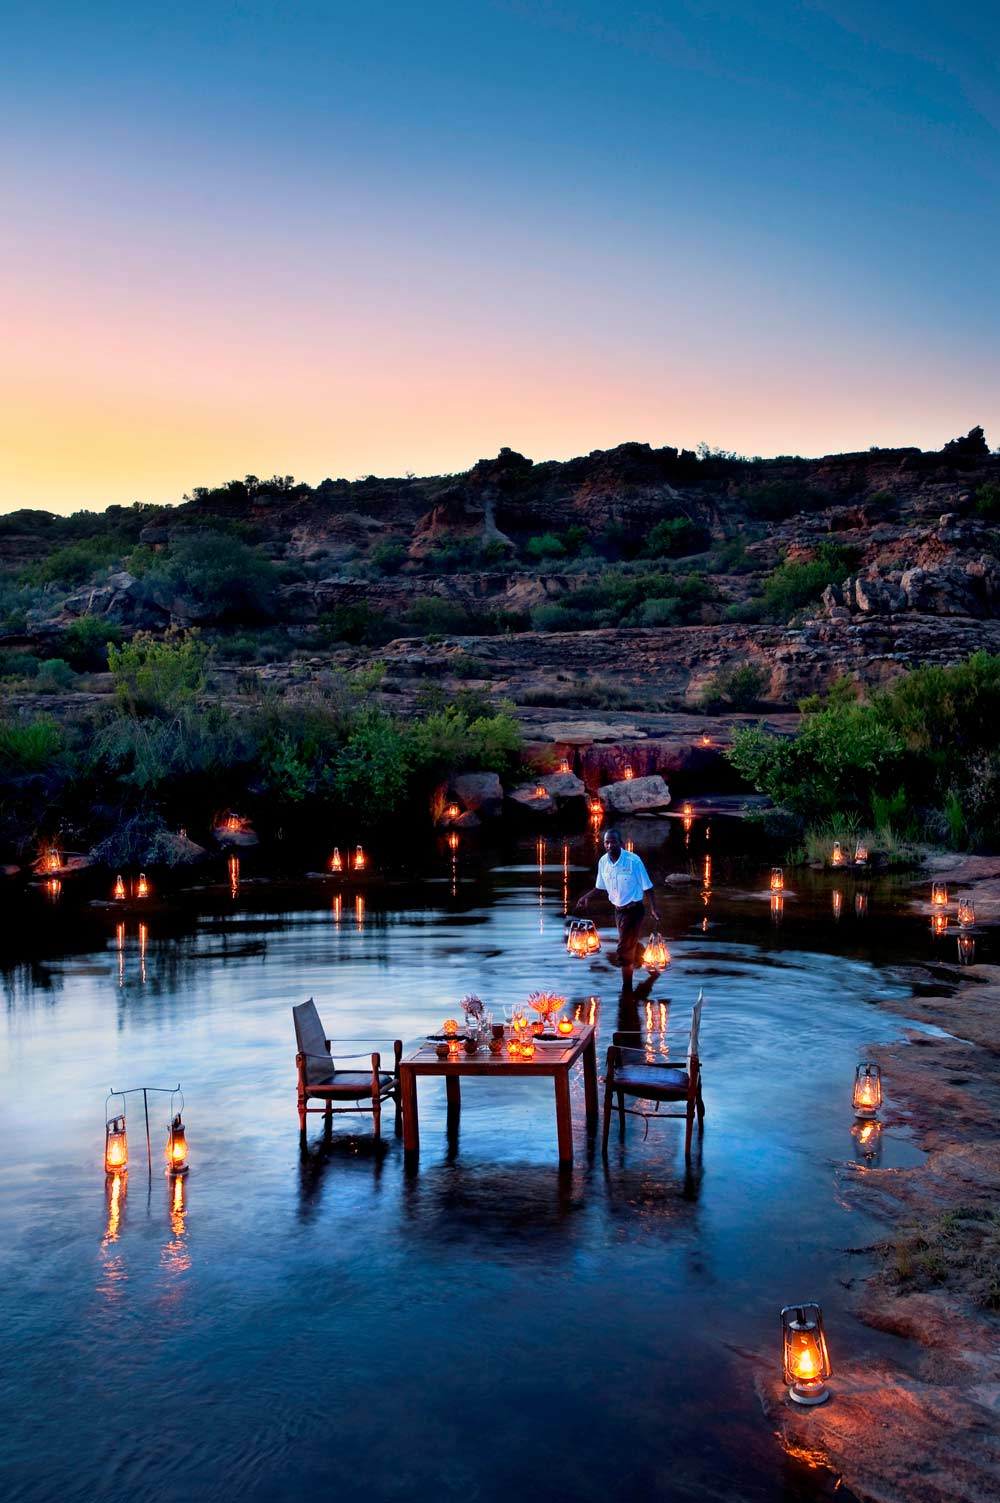 Outdoor Dining Experience at Bushmans Kloof Wilderness Reserve Western Cape, South Africa